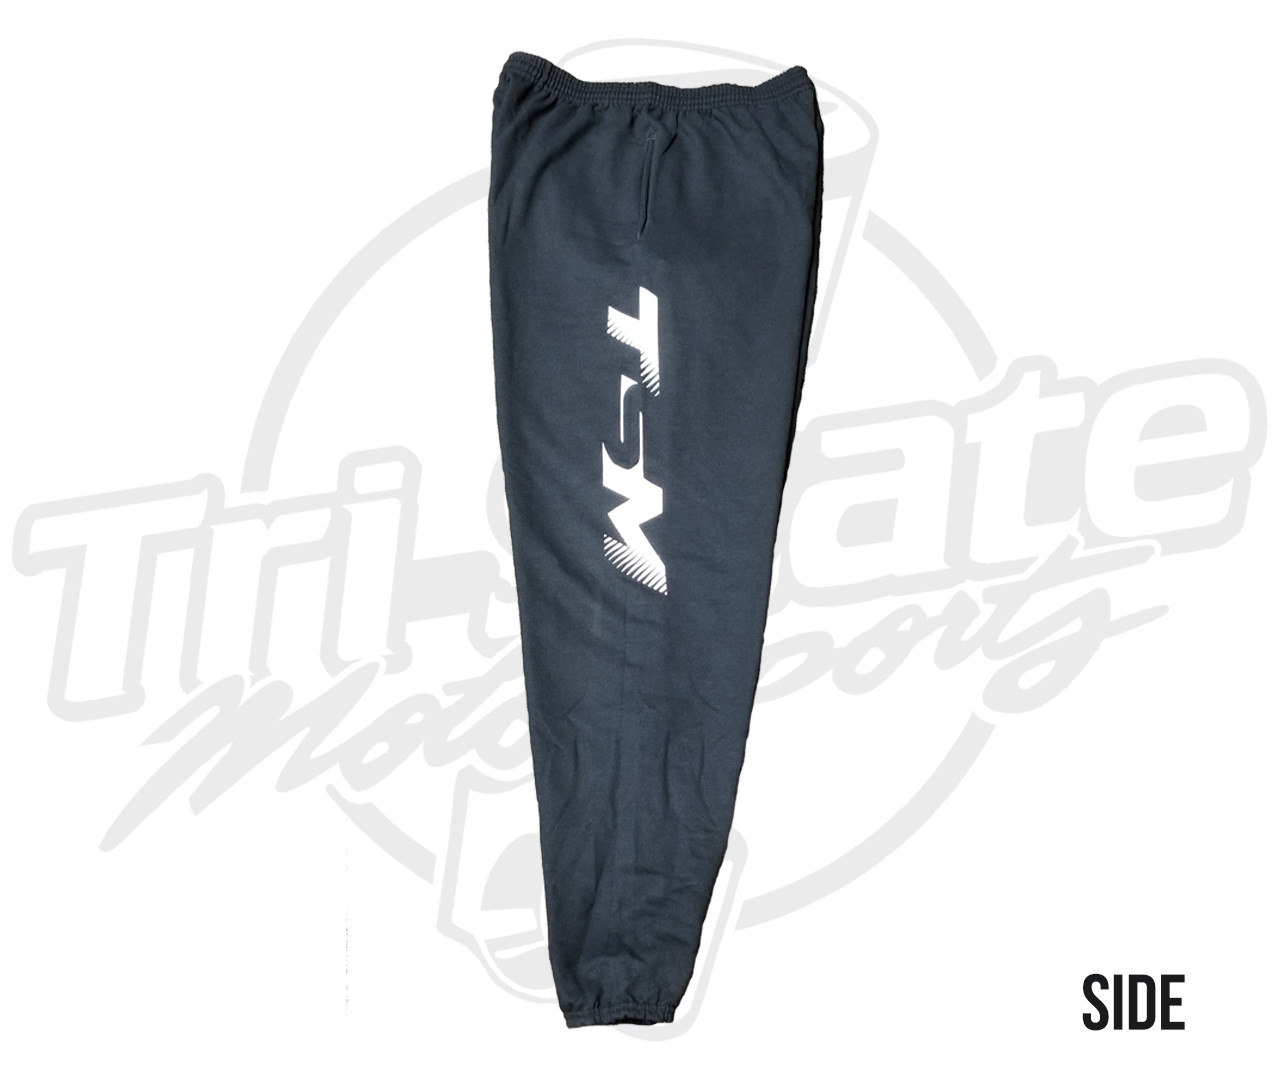 TSM - Sweat Pants (2018 Design)